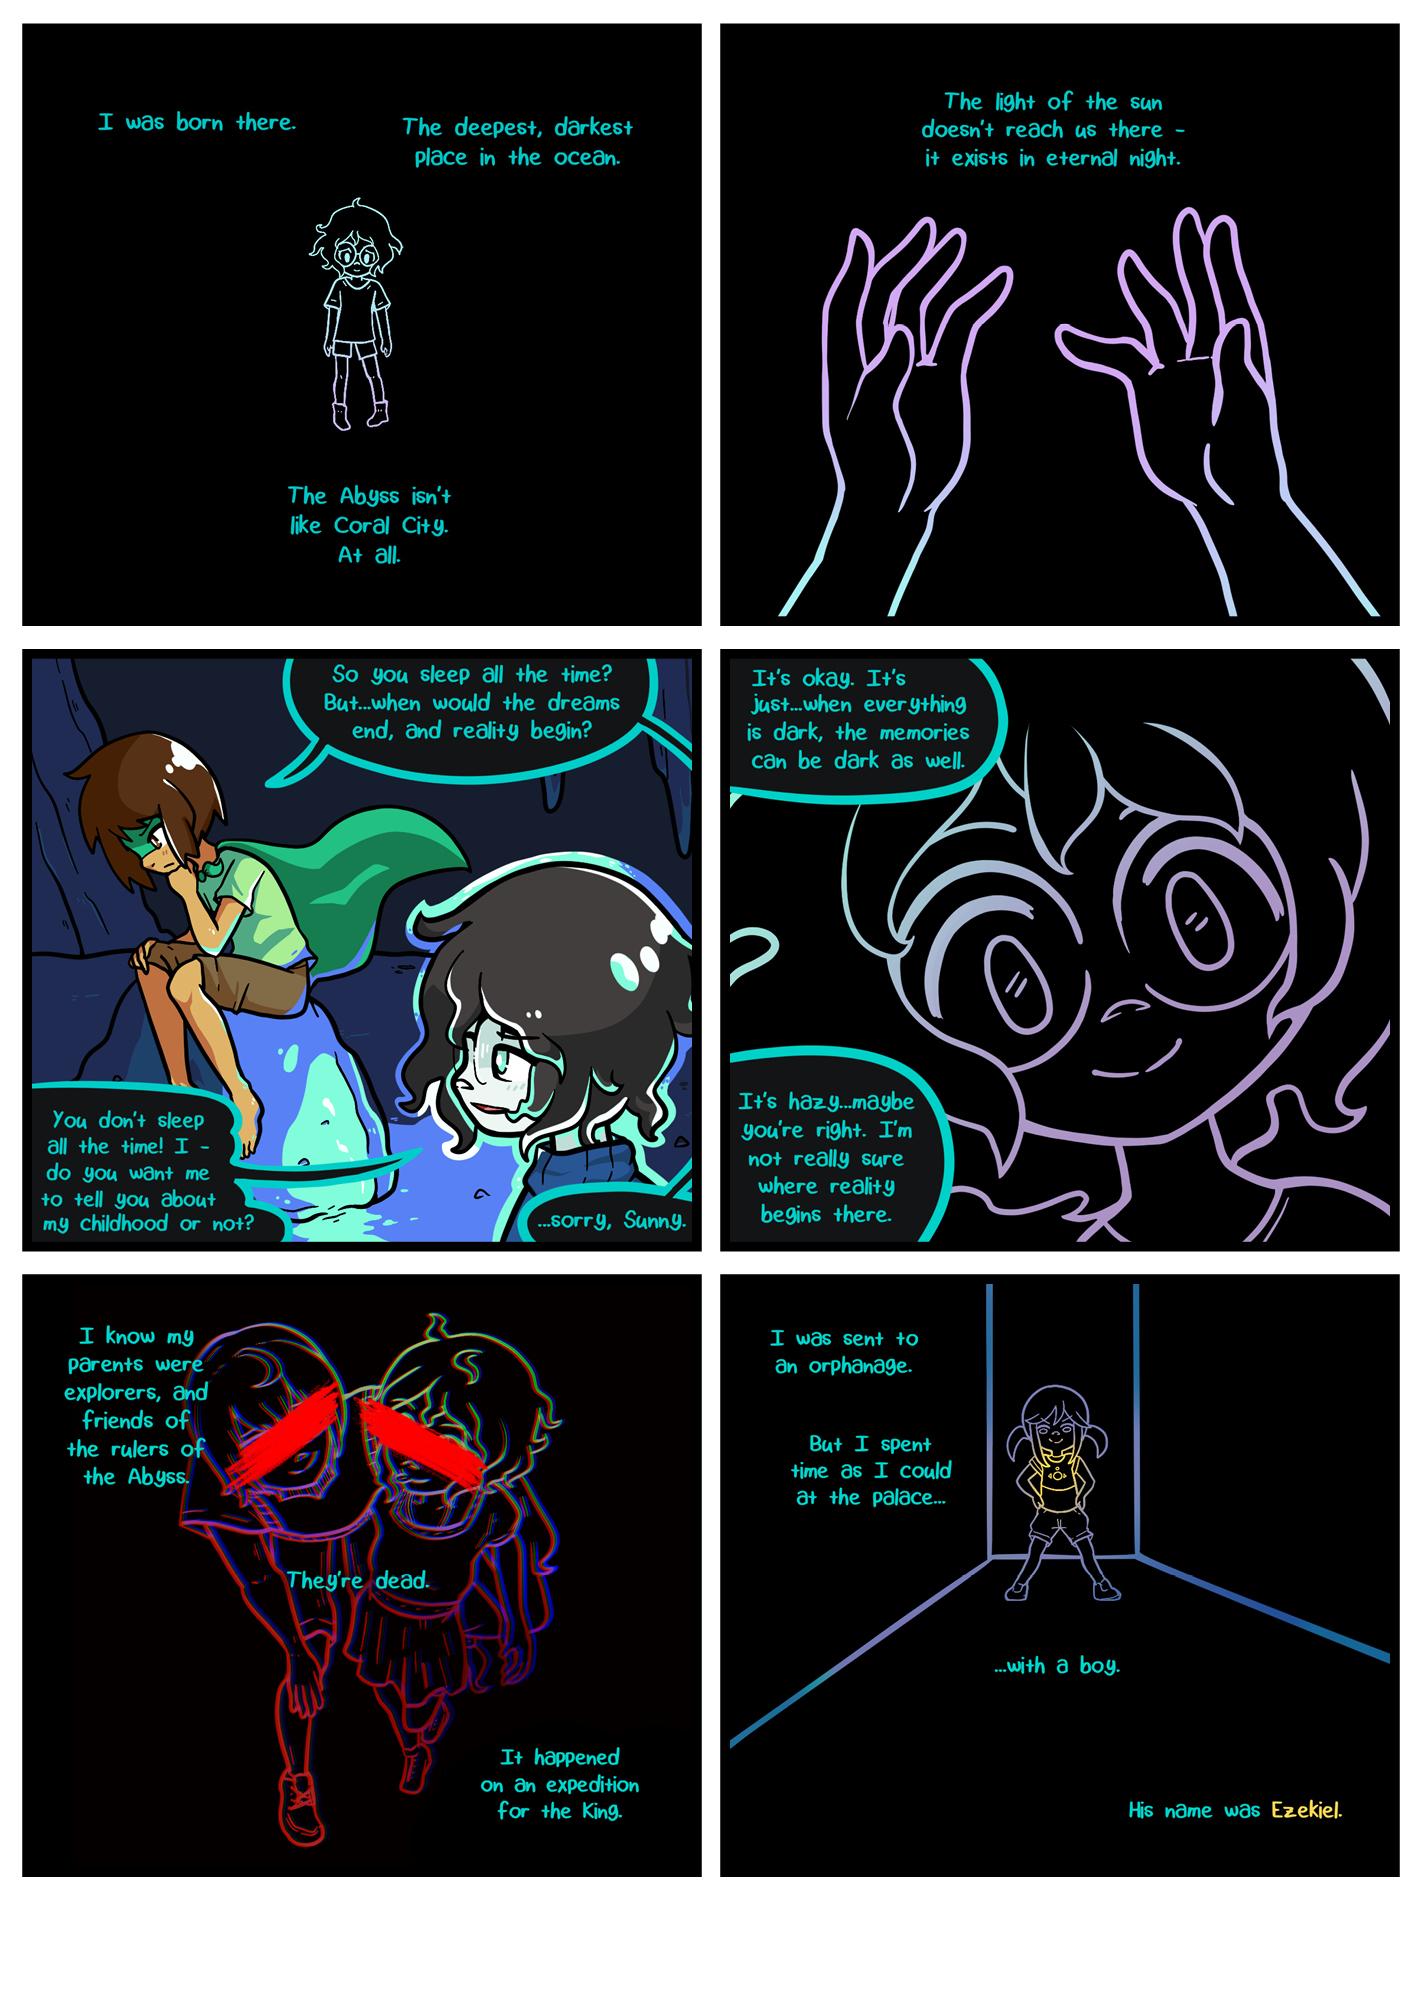 Seasick the underwater adventure comic, chapter 2 page 56 full page